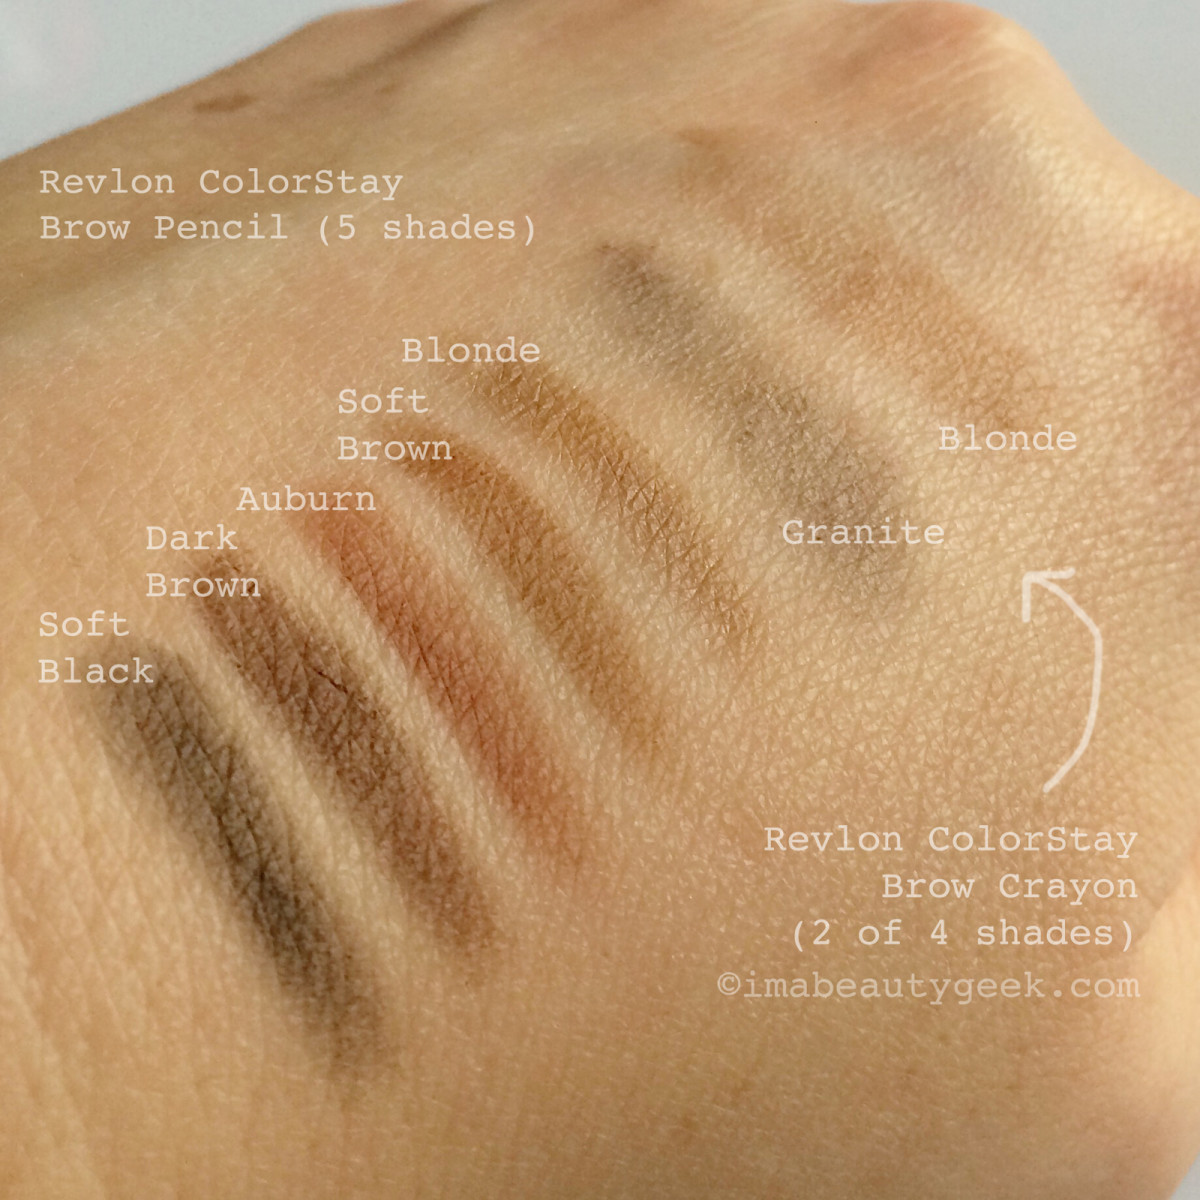 Revlon ColorStay Brow Pencil and Revlon ColorStay Brow Crayon swatches